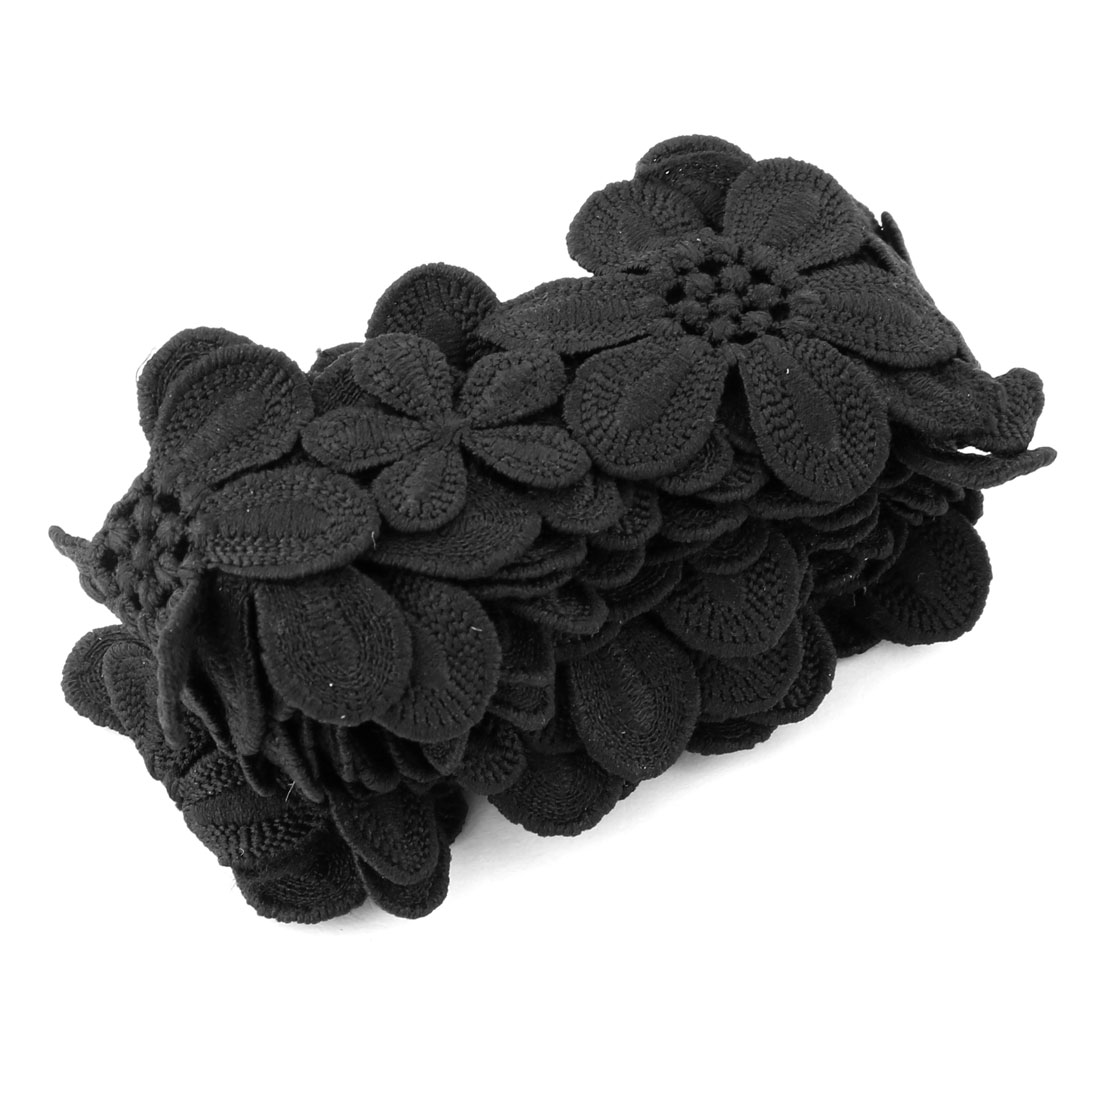 Home Polyester Embroidery Clothes Decor Sewing Lace Trim Craft Black 2.2 Yards